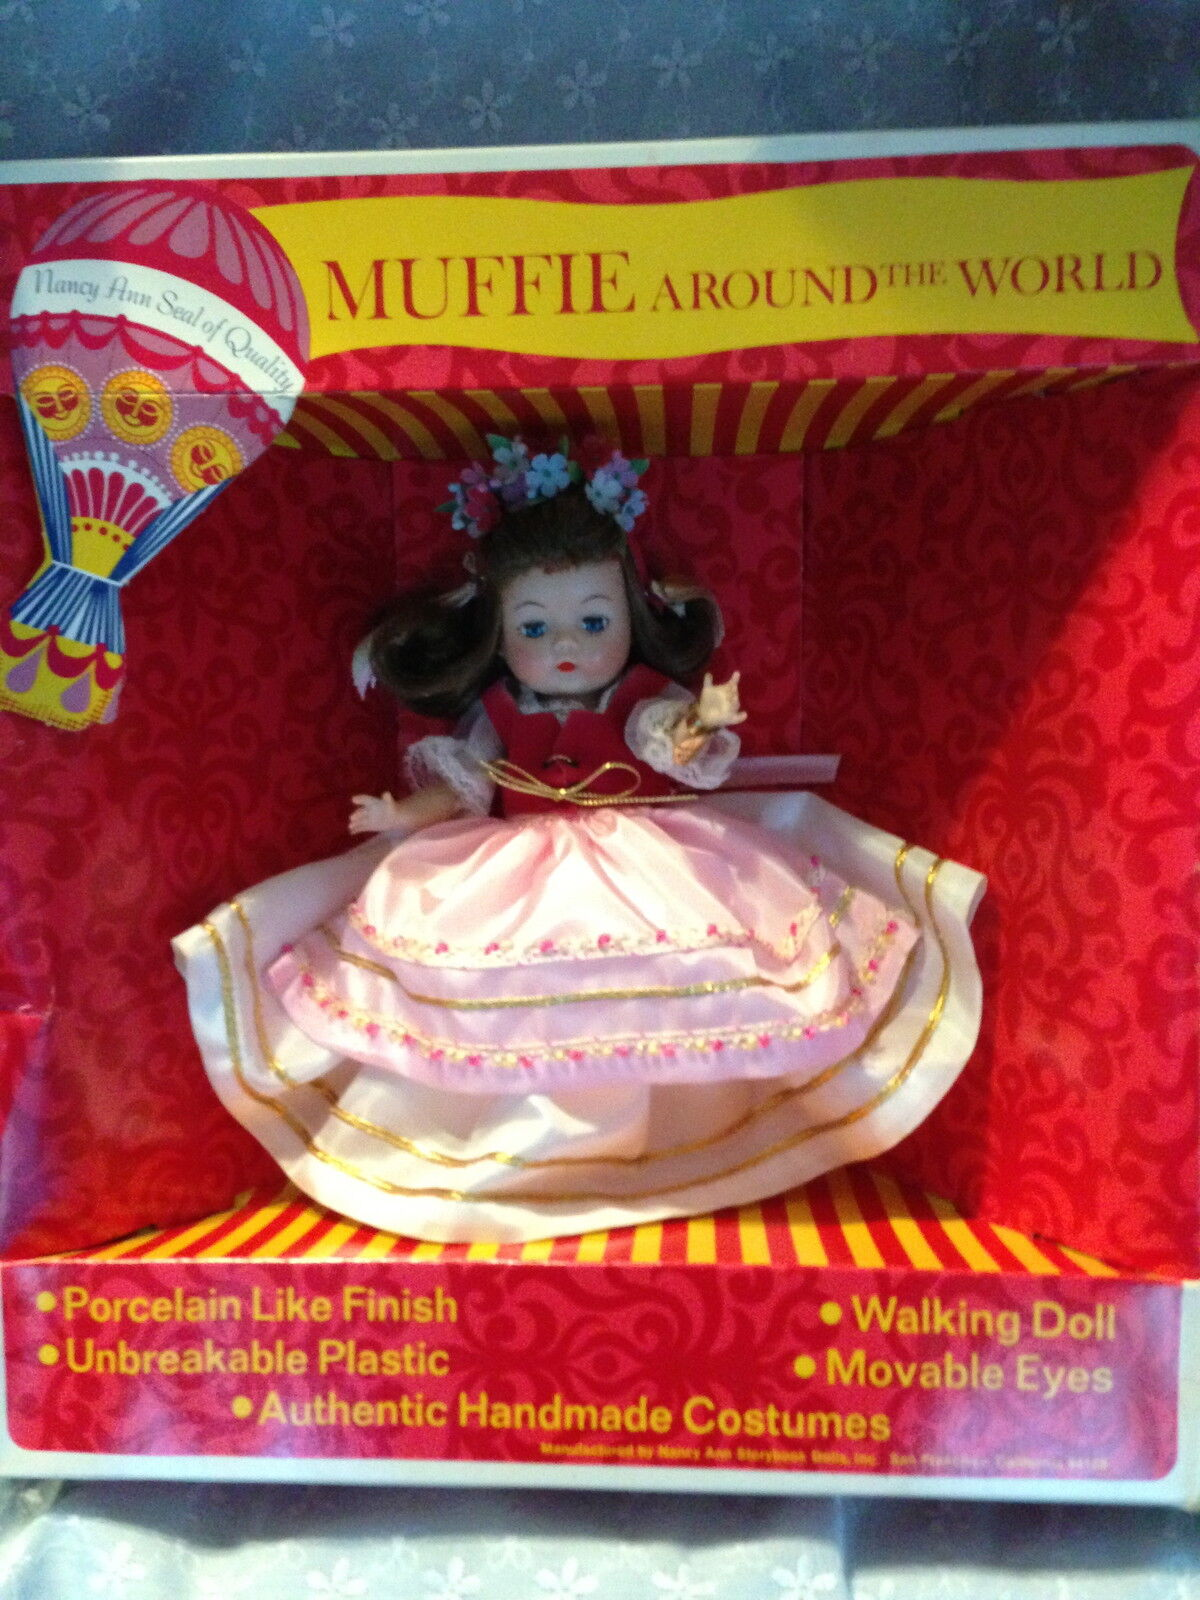 Nancy Anne Muffie C 1950-60 MIB Poland  Doll Boxed in Original Condition